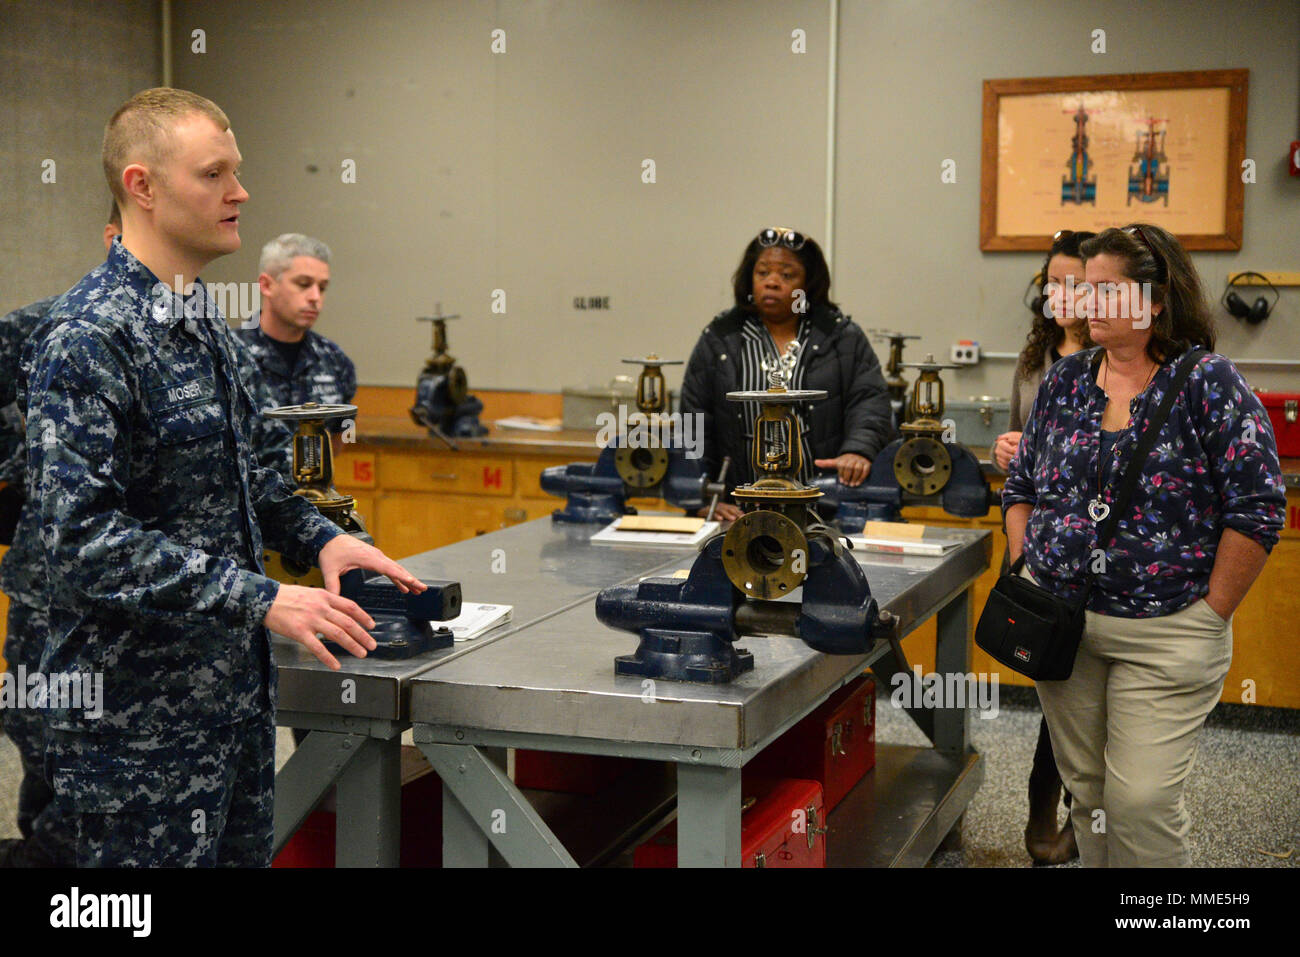 surface warfare officer stock photos surface warfare officer stock rh alamy com Surface Warfare Officer School Surface Warfare Officer Logo